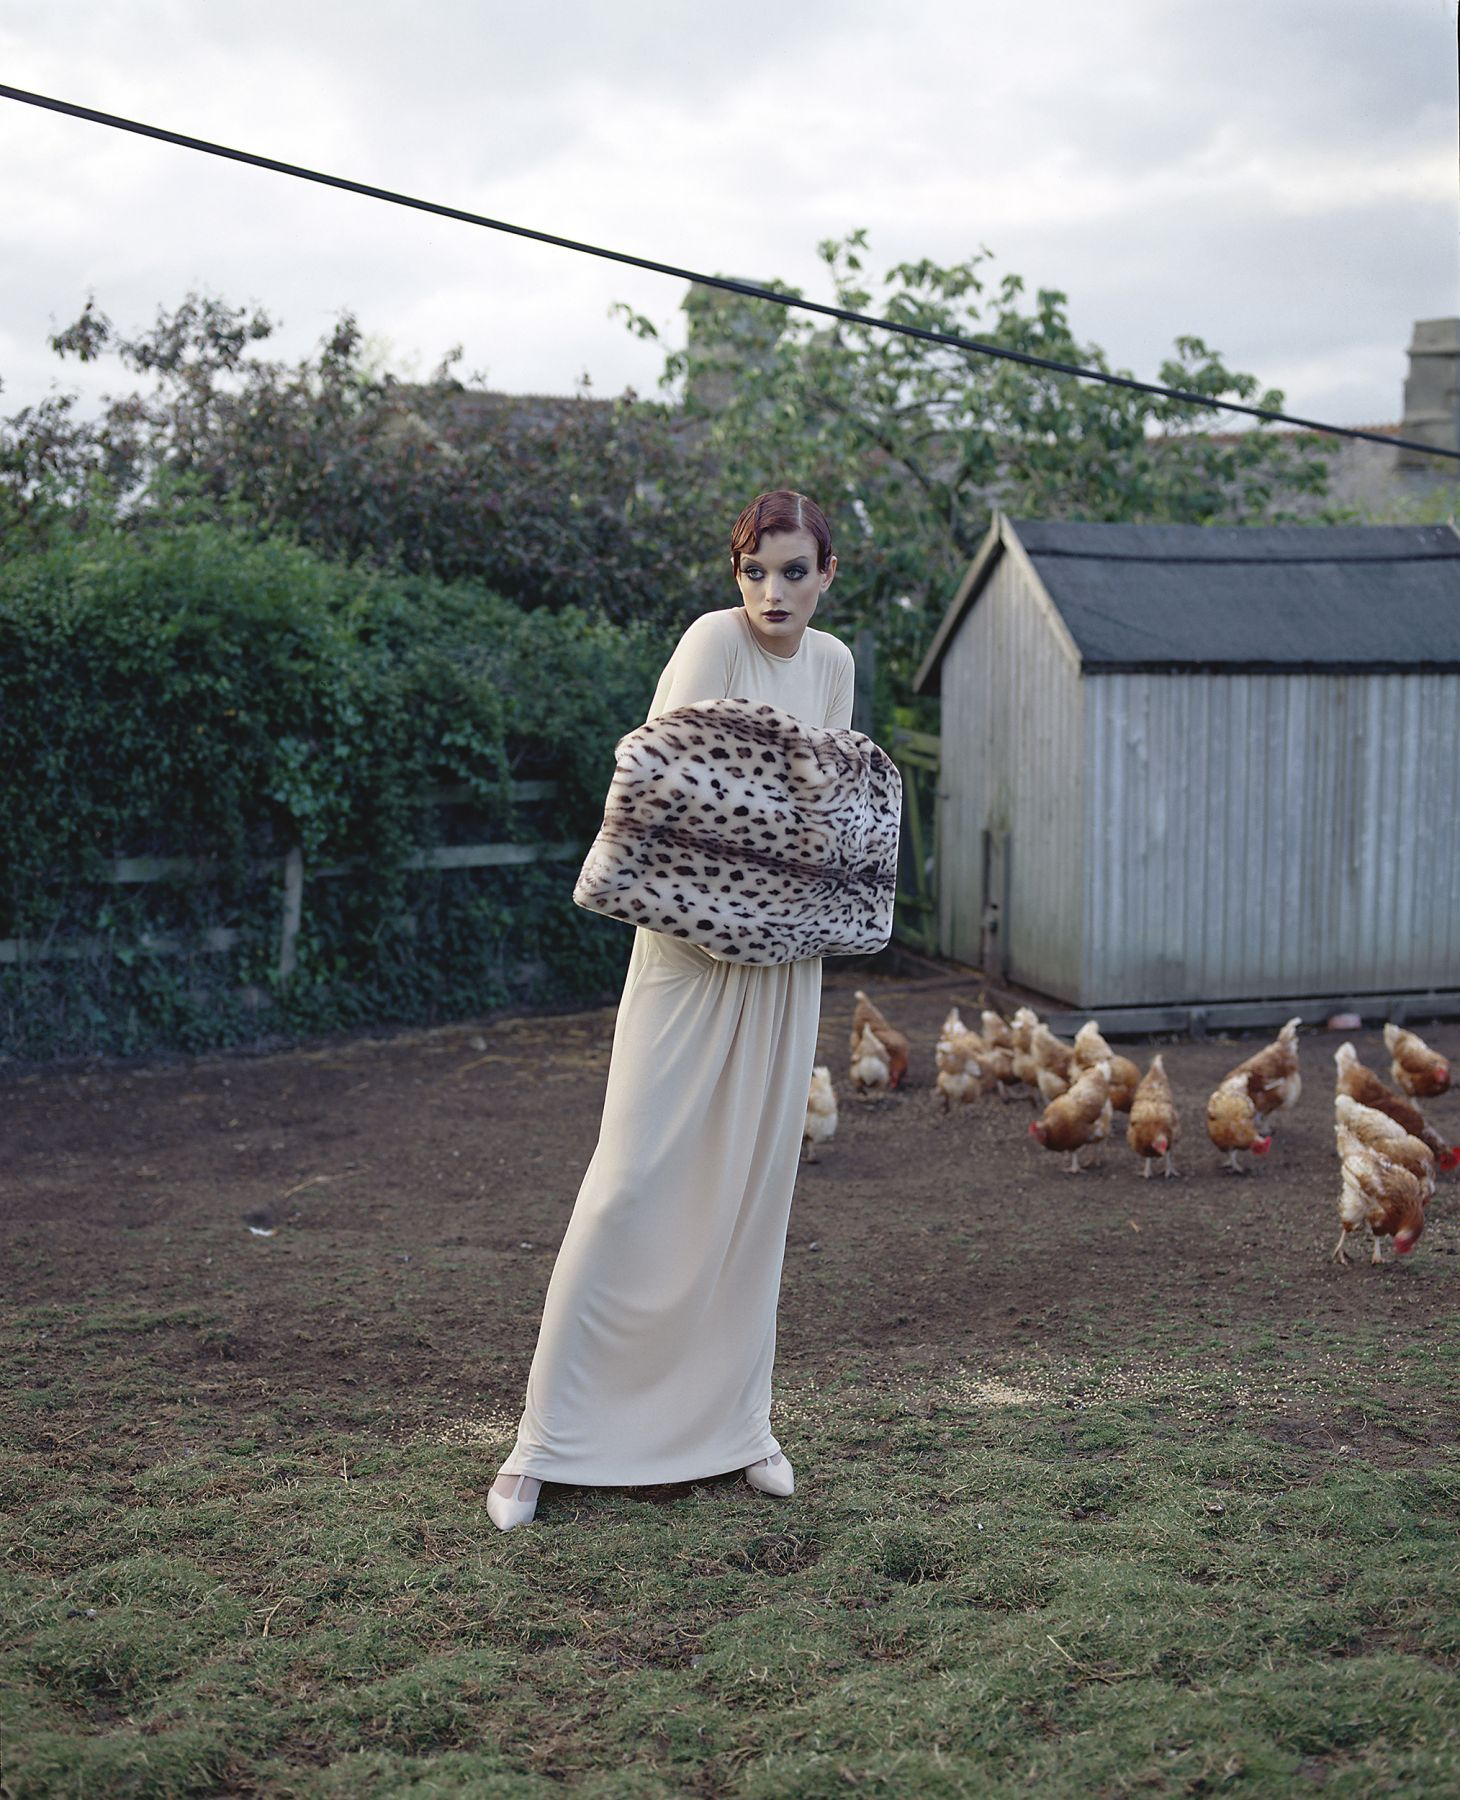 Model in the Hen Yard, England, 1995, Archival Pigment Print